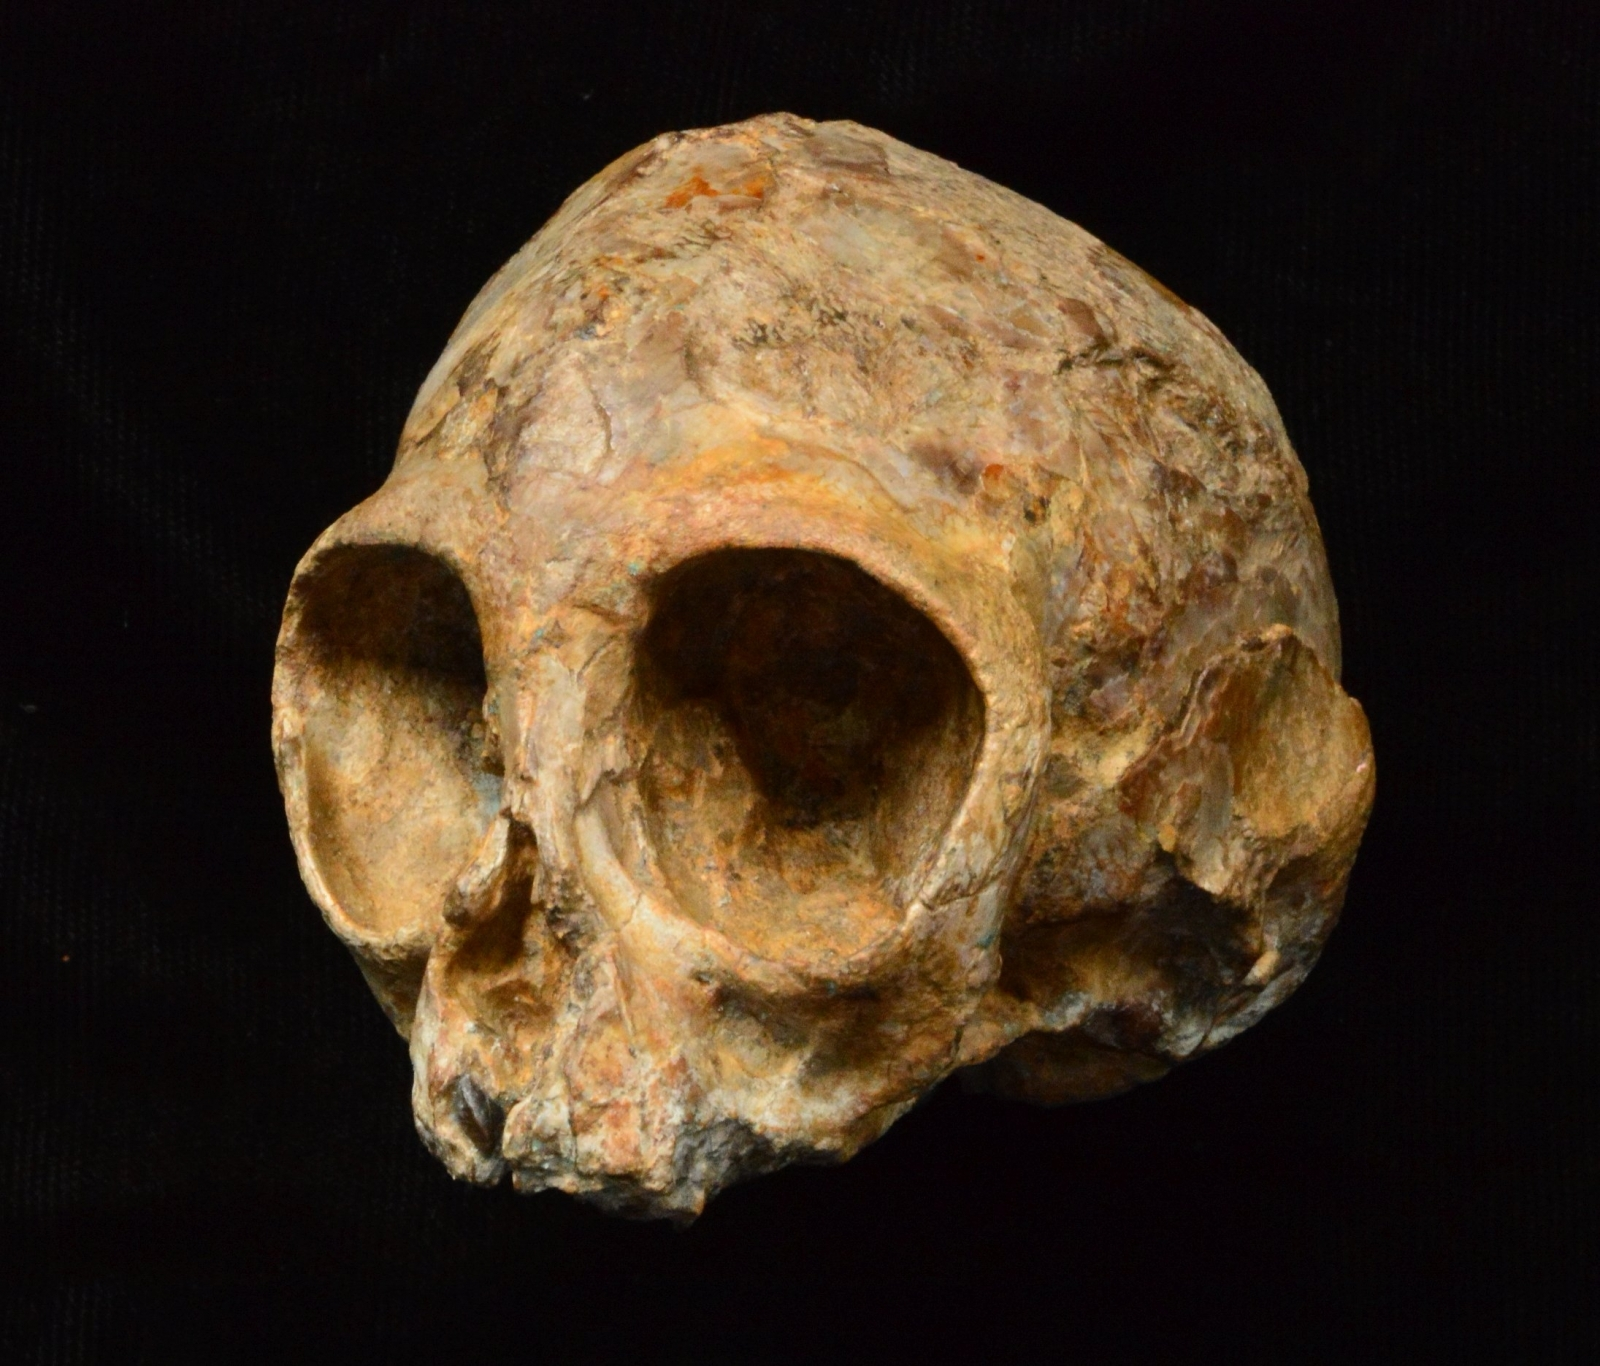 Infant ape fossil skull illuminates humankind's remote past